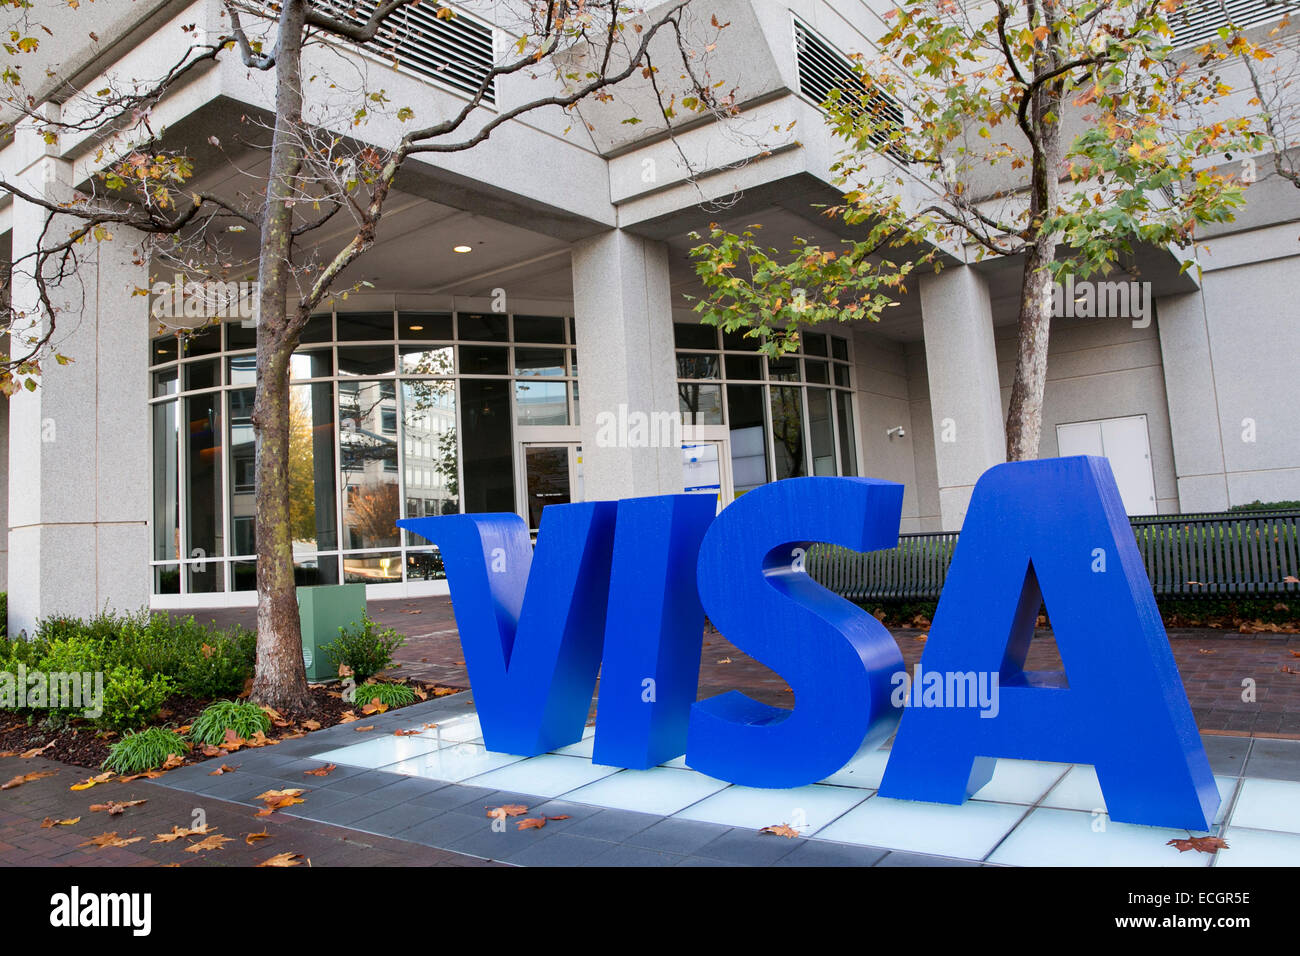 The headquarters of credit card provider Visa. - Stock Image